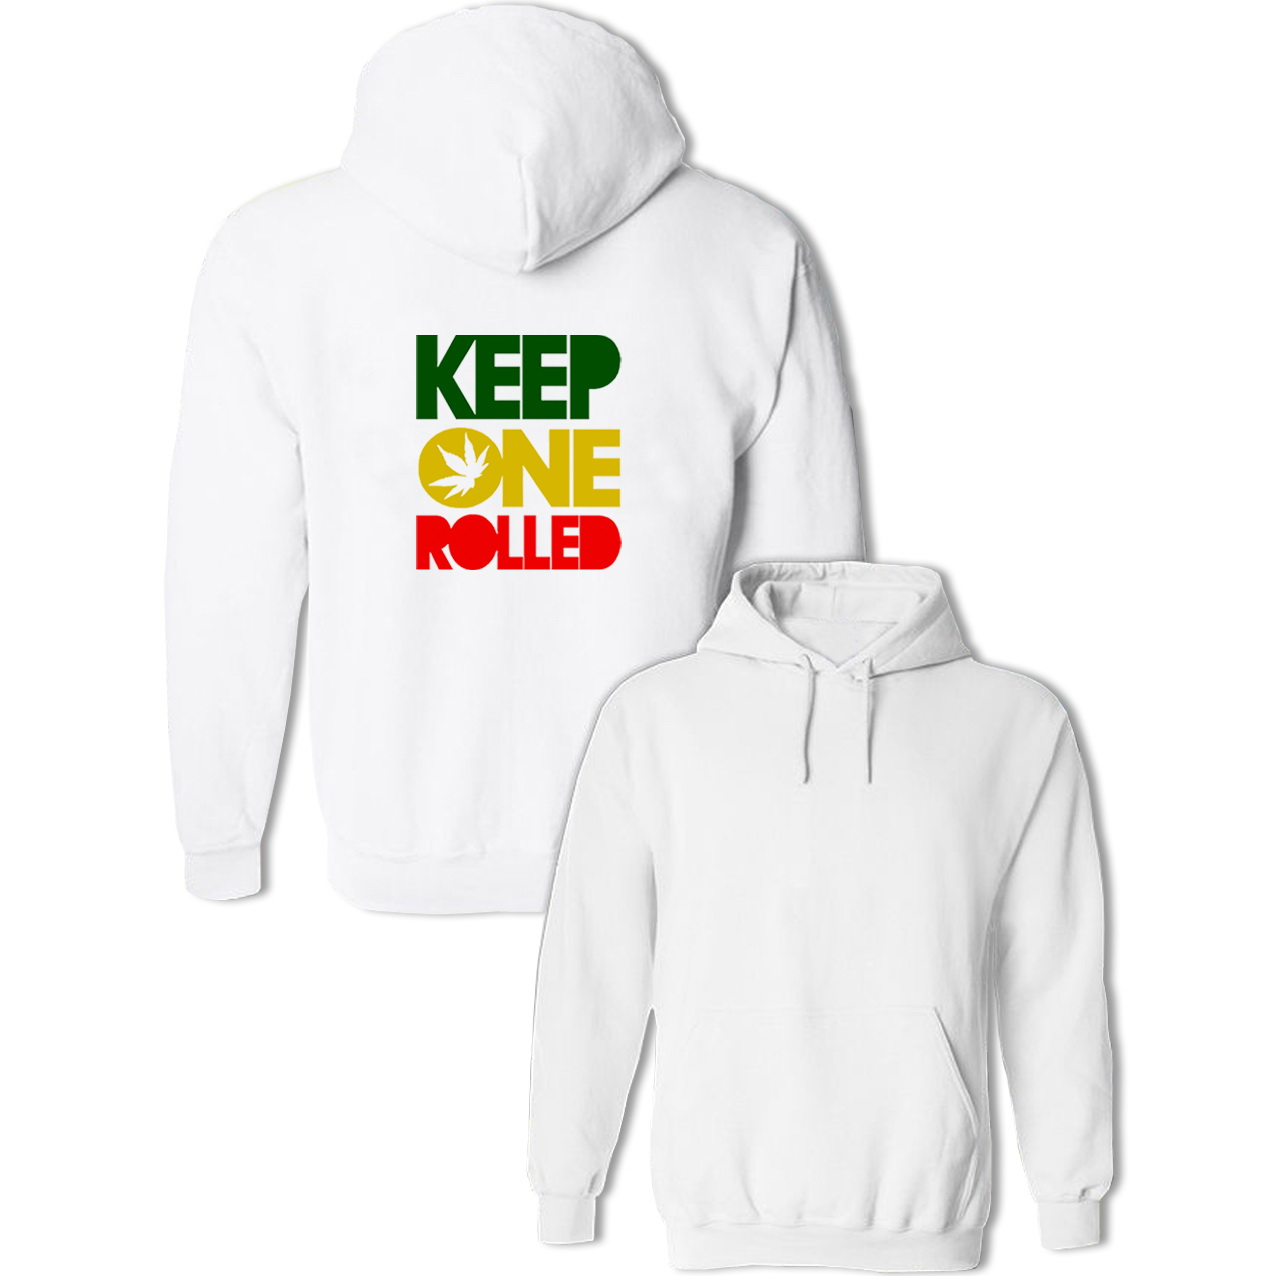 Fashion Keep one Rolled Design Hoodies Mens Womens Boys Girls Sweatshirts Multi Color Long Sleeve Pullovers Unisex Jackets